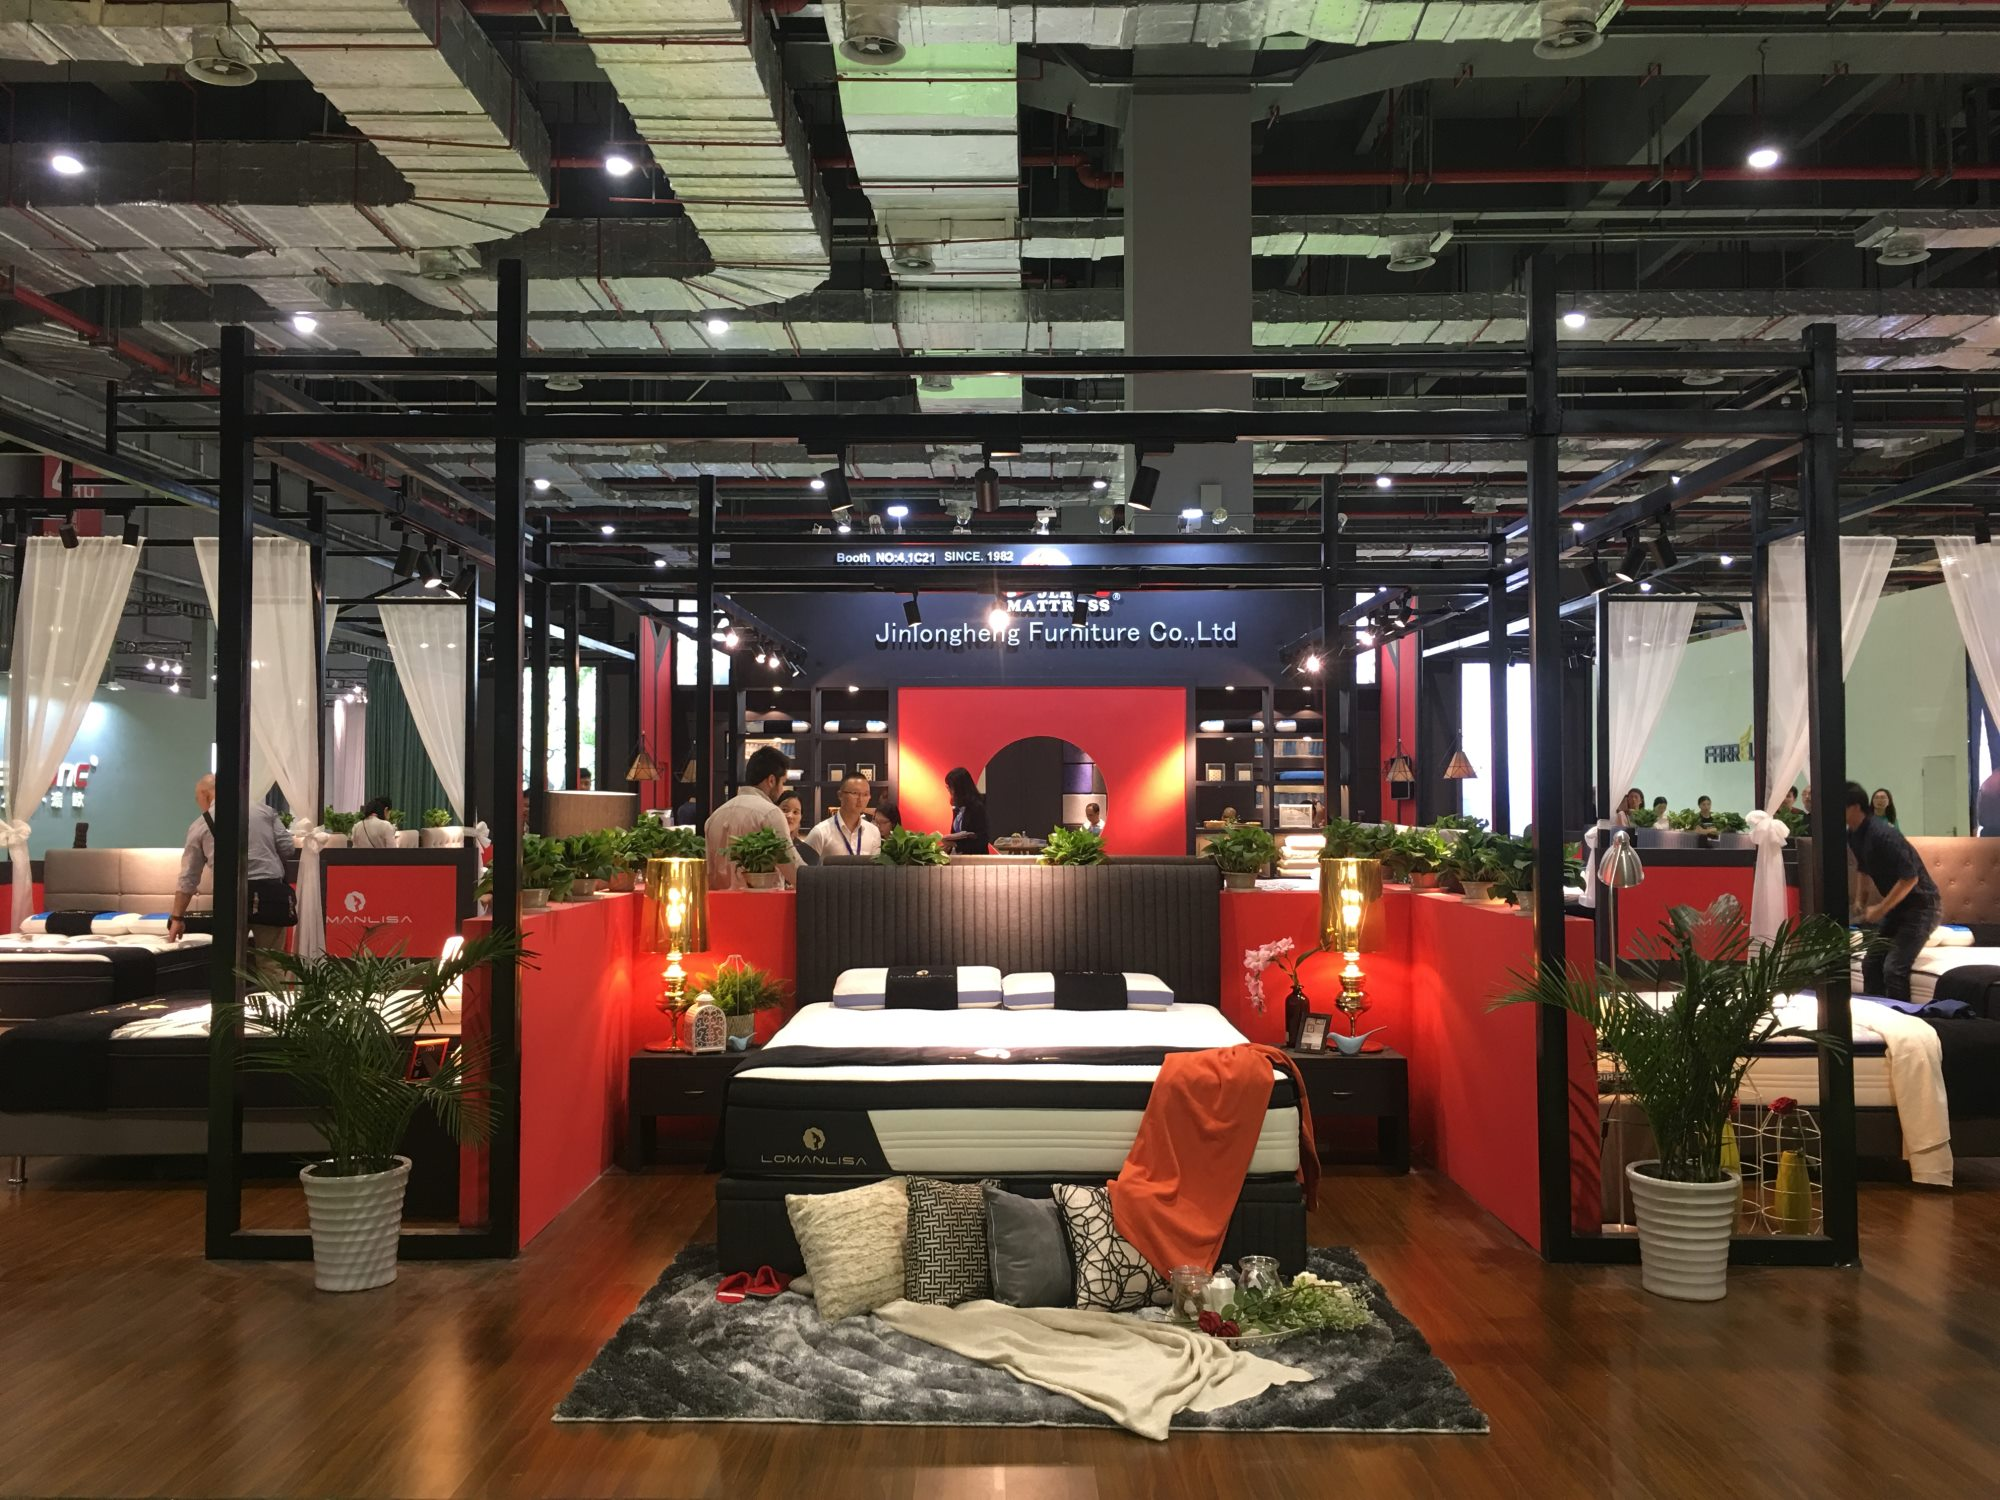 Jinlong Hengheng Furniture Co., LTD. Has Been Exhibiting For Many Years,  And Through This Platform, We Constantly Promot The High Quality Fashion  Software ...